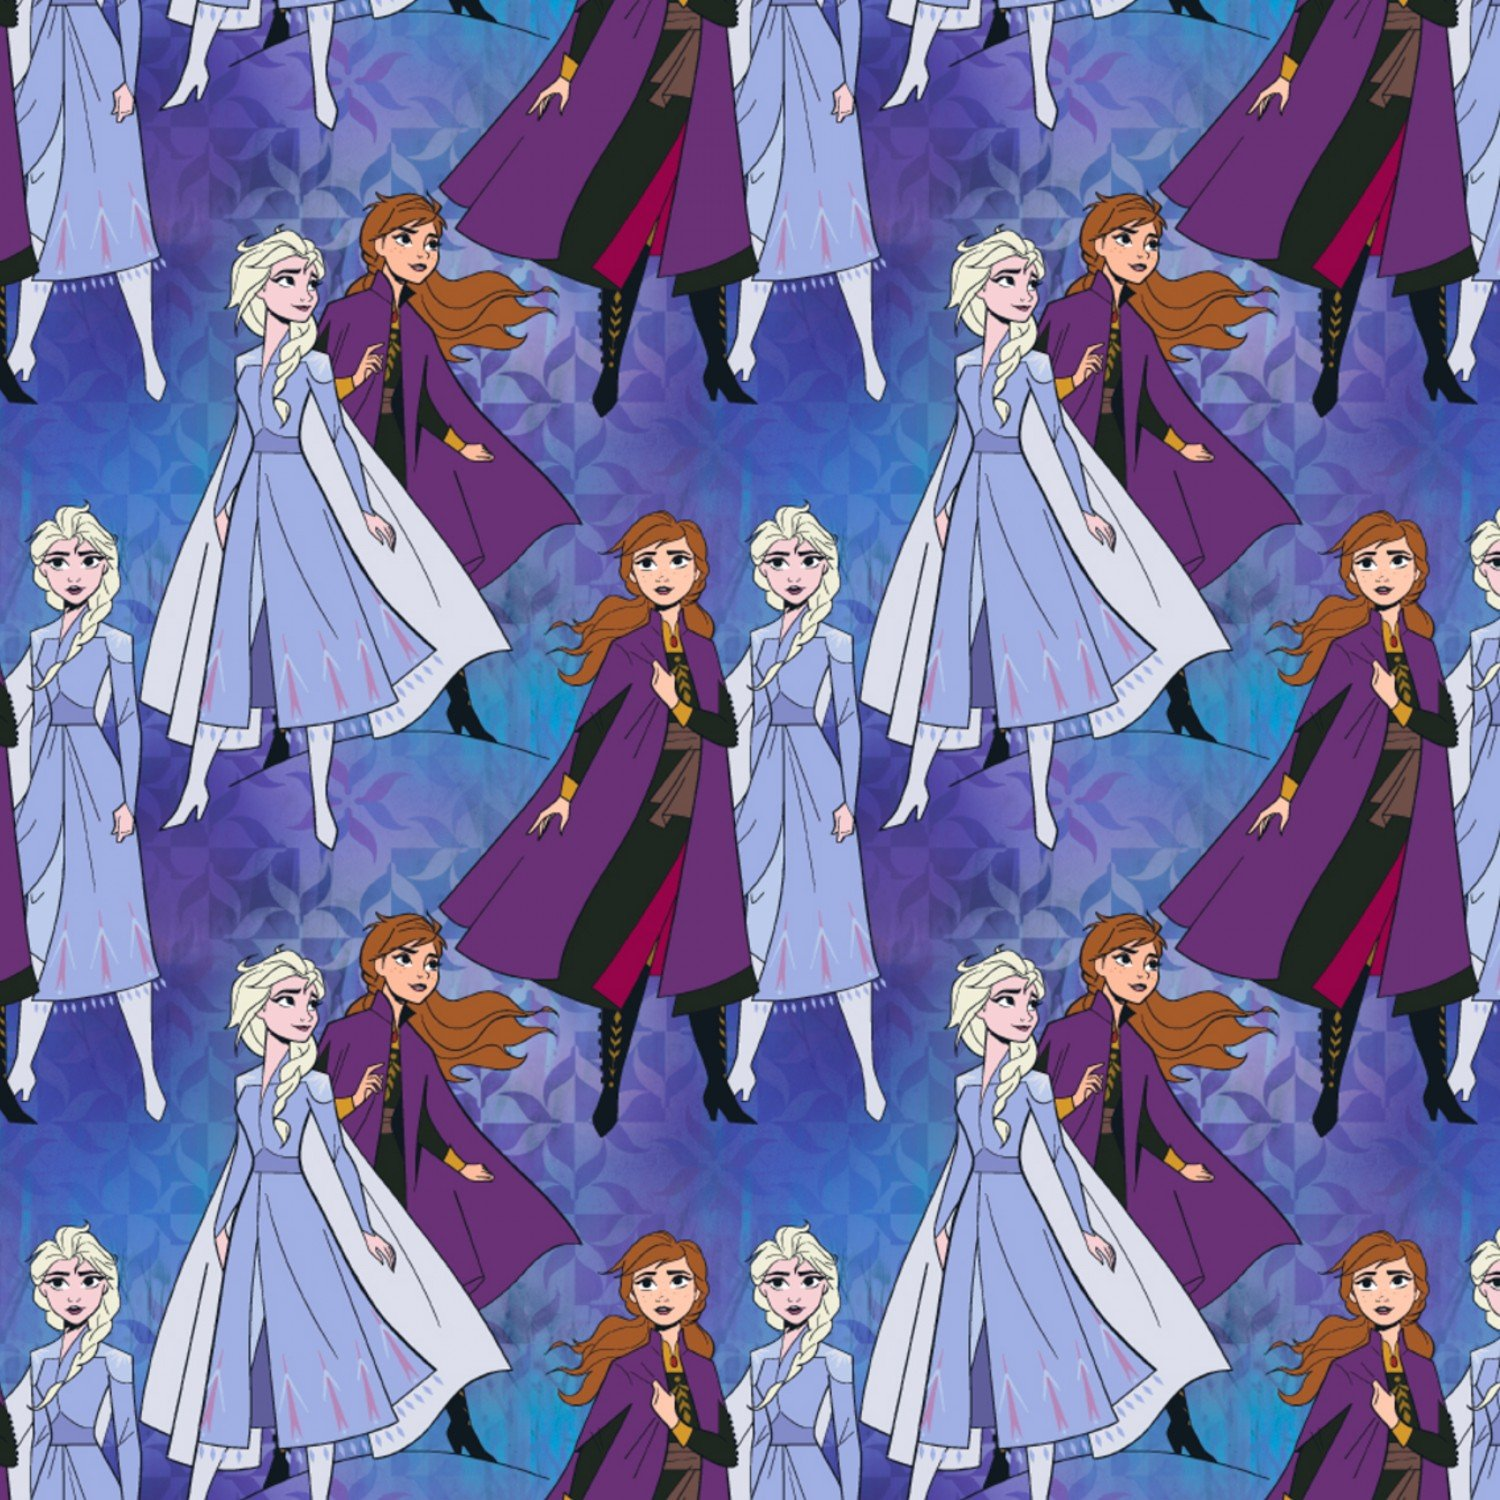 Frozen 2 Elsa And Anna Together Children's Cotton Fabric Yardage